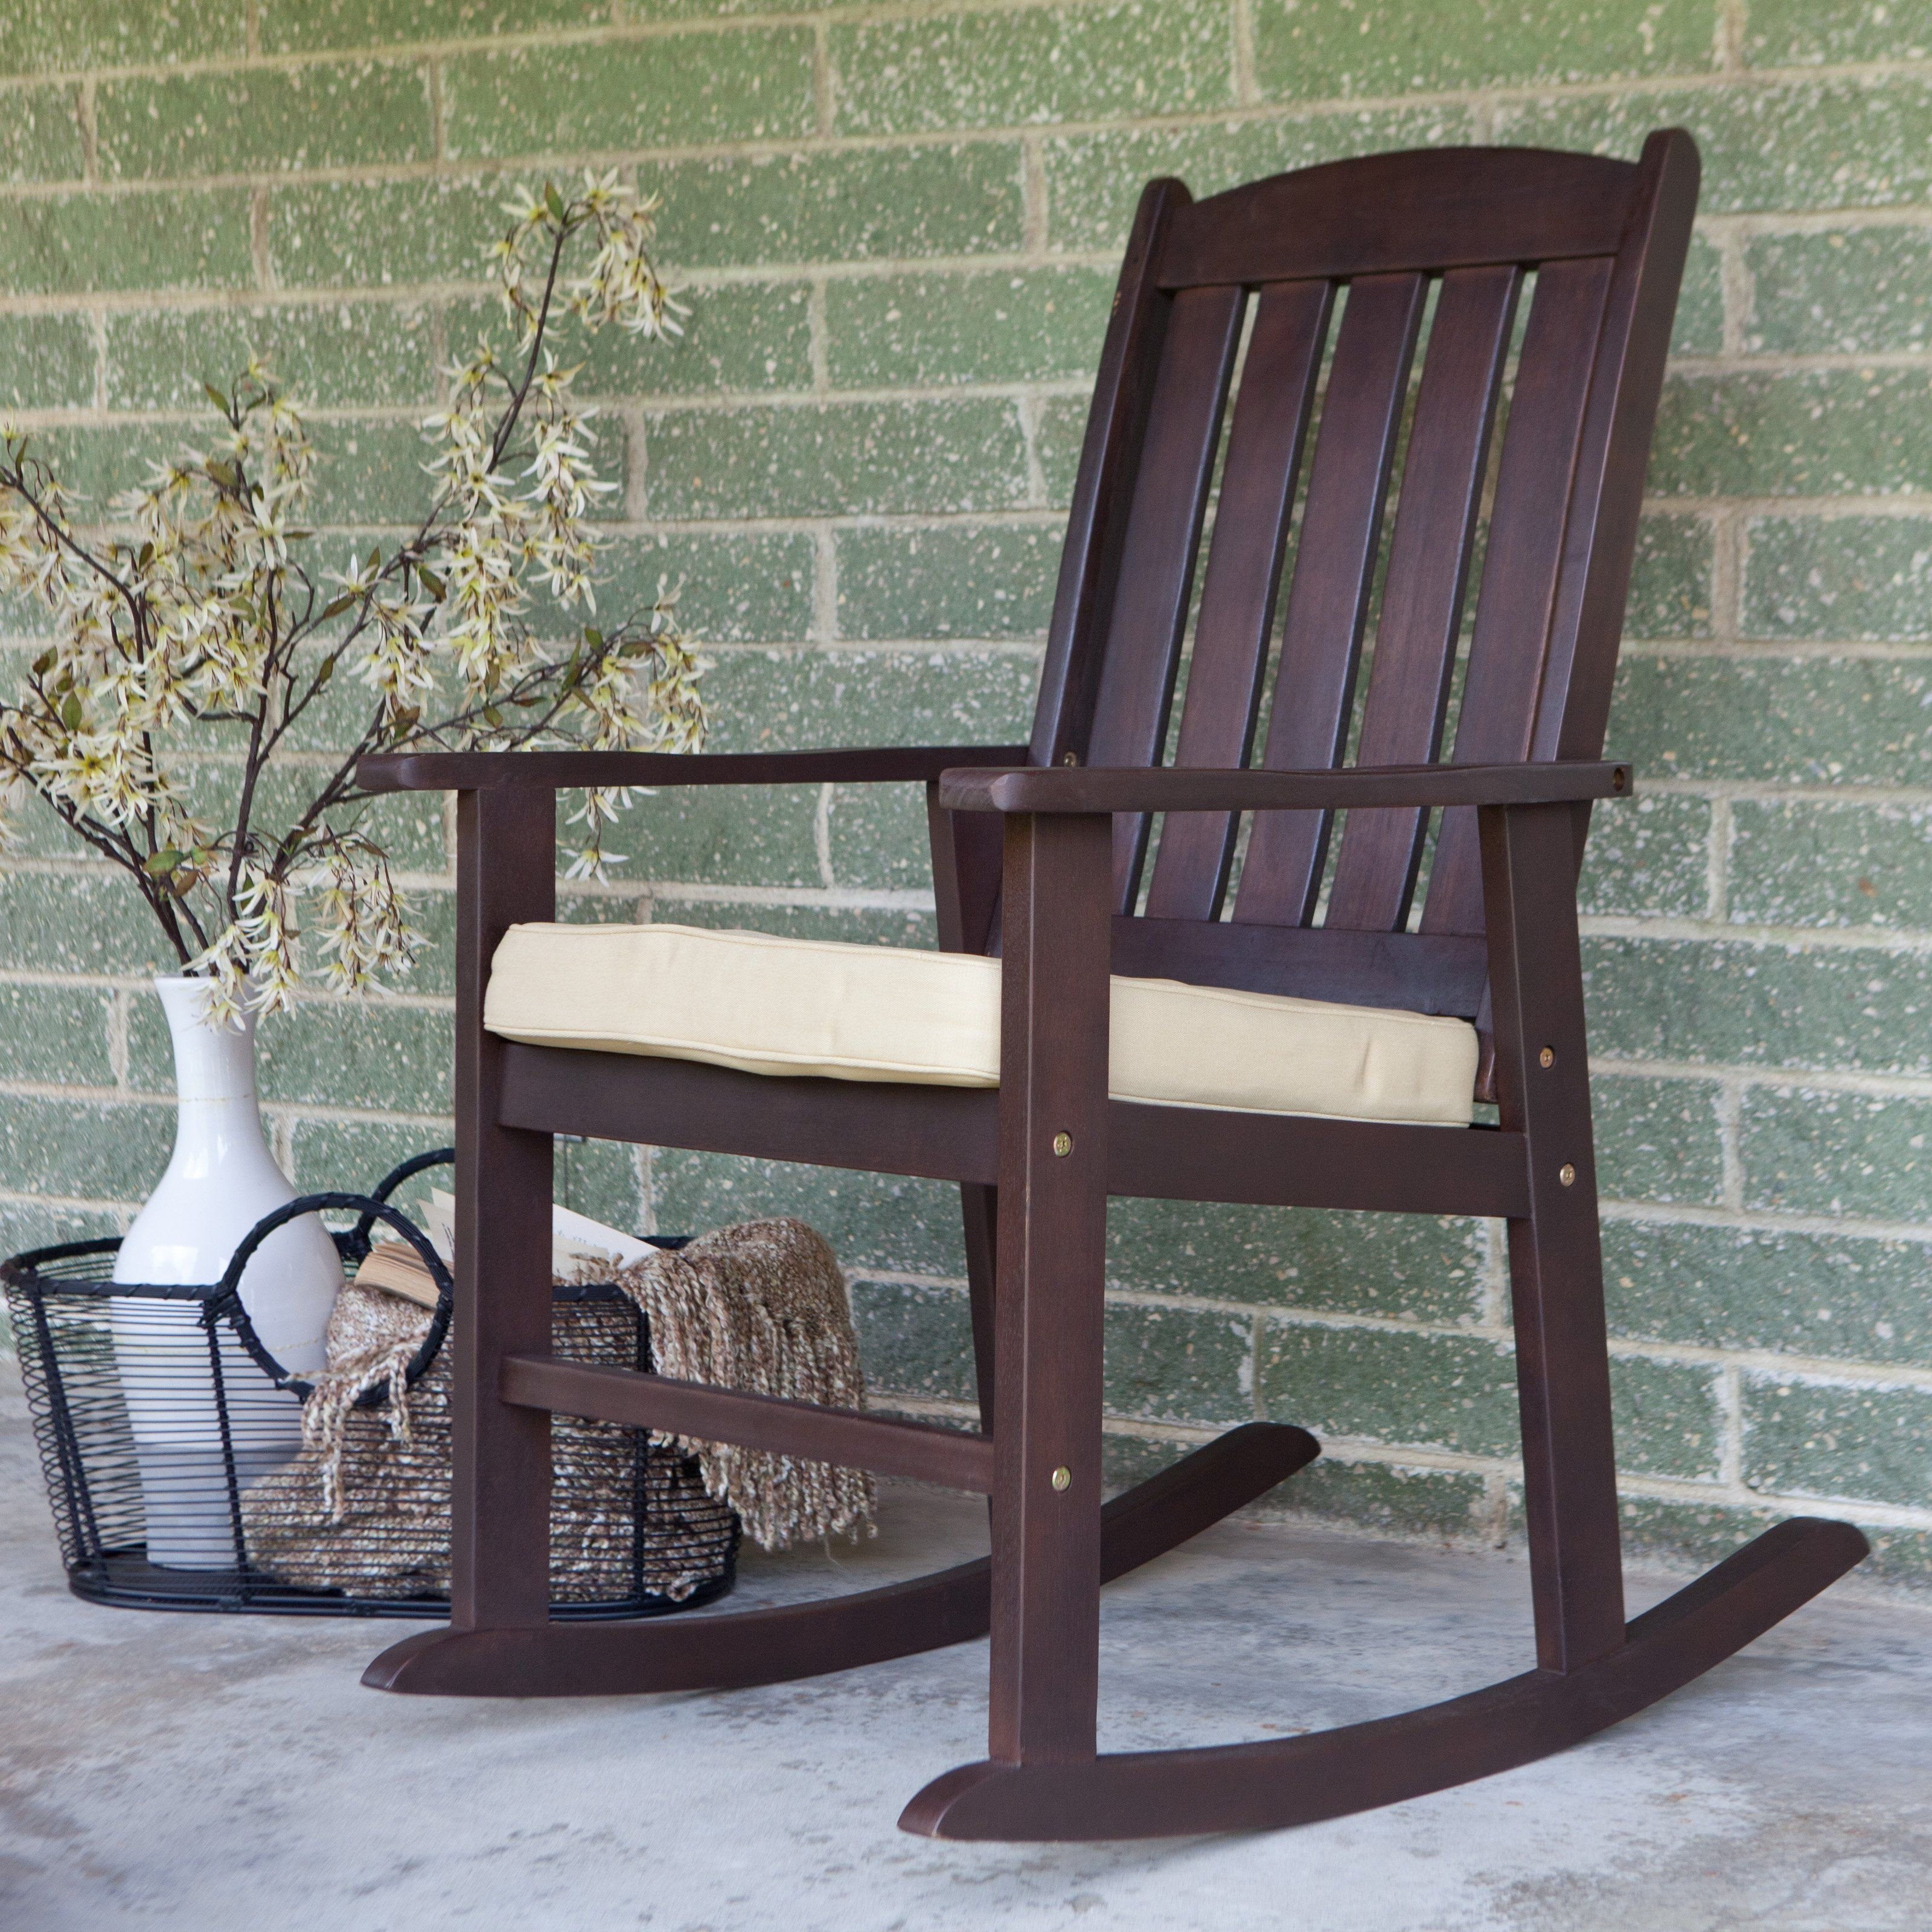 Cabos collection rocking chair with cushion 12999